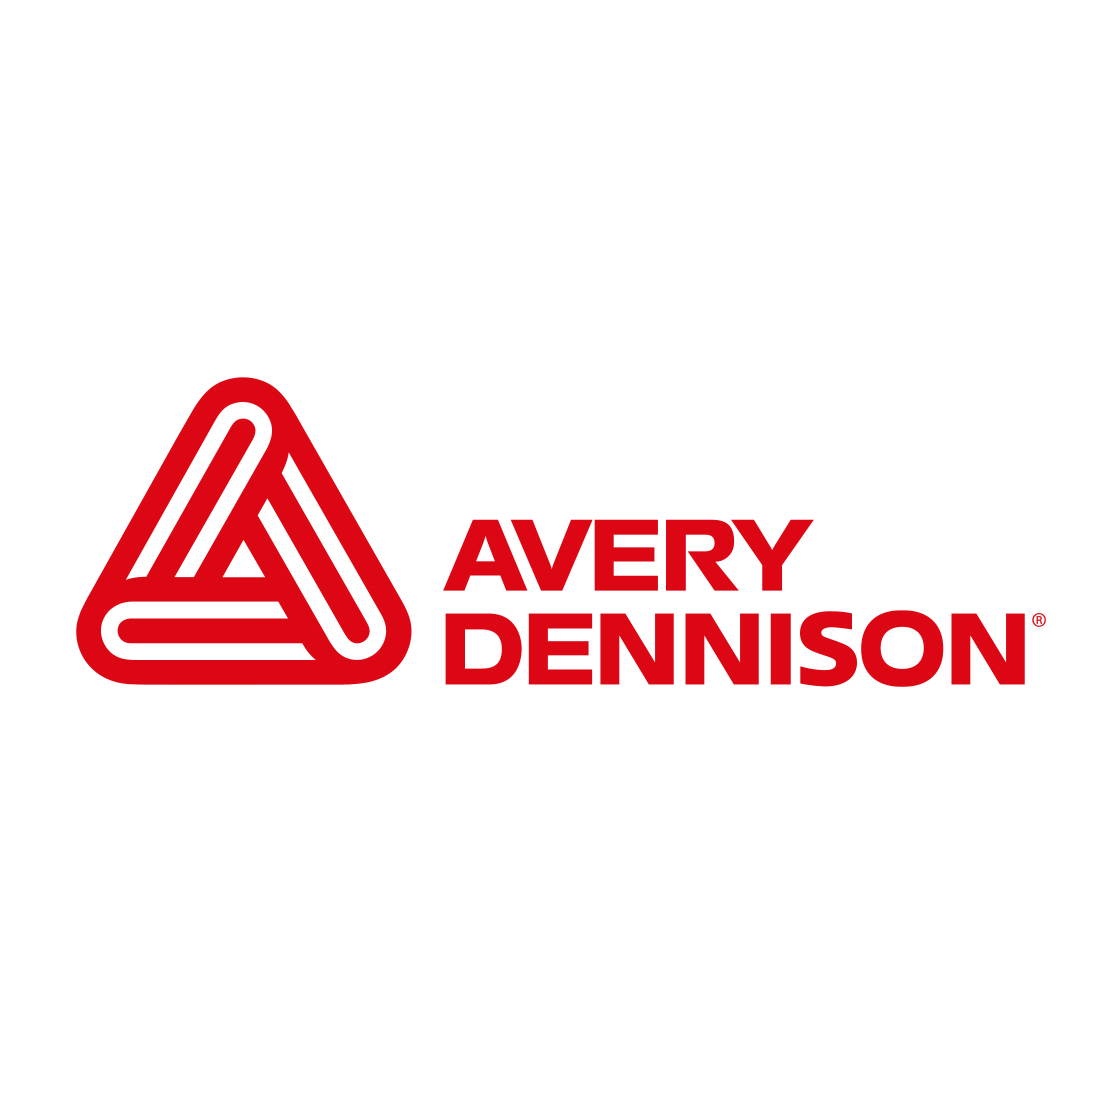 Avery Dennison 5300 Blockout Film